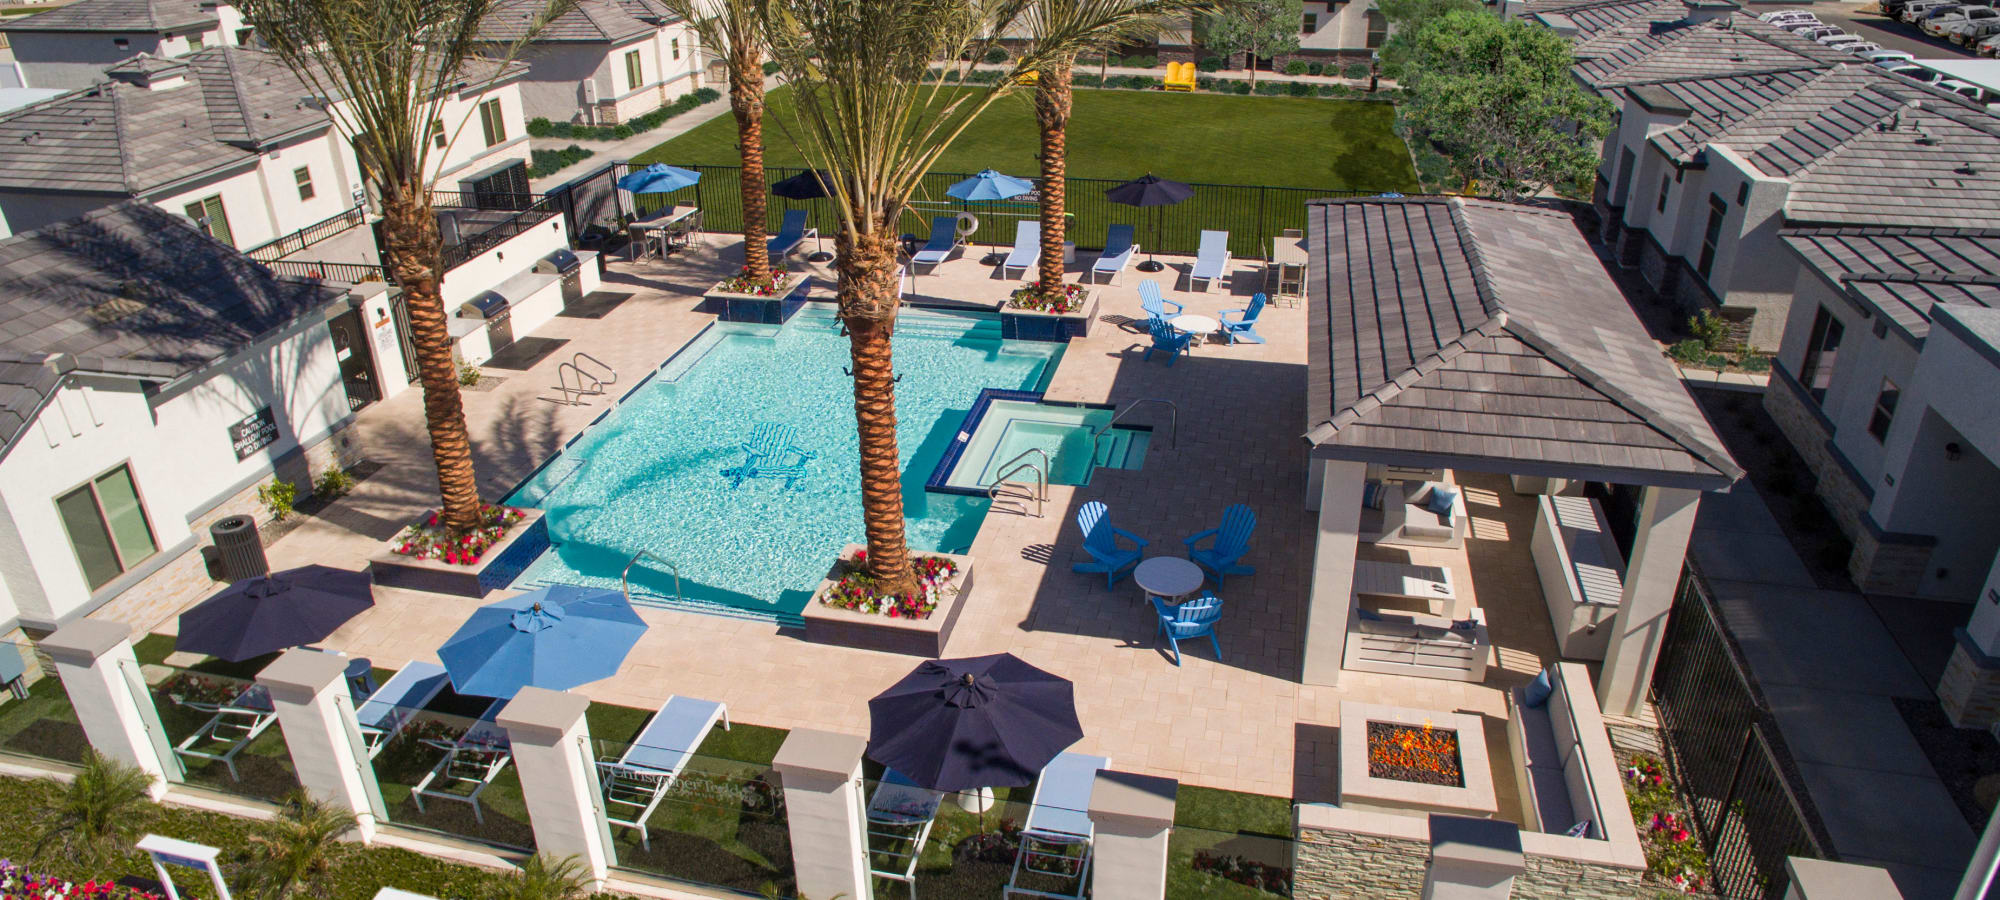 Aerial view of the swimming pool at Christopher Todd Communities On Camelback in Litchfield Park, Arizona